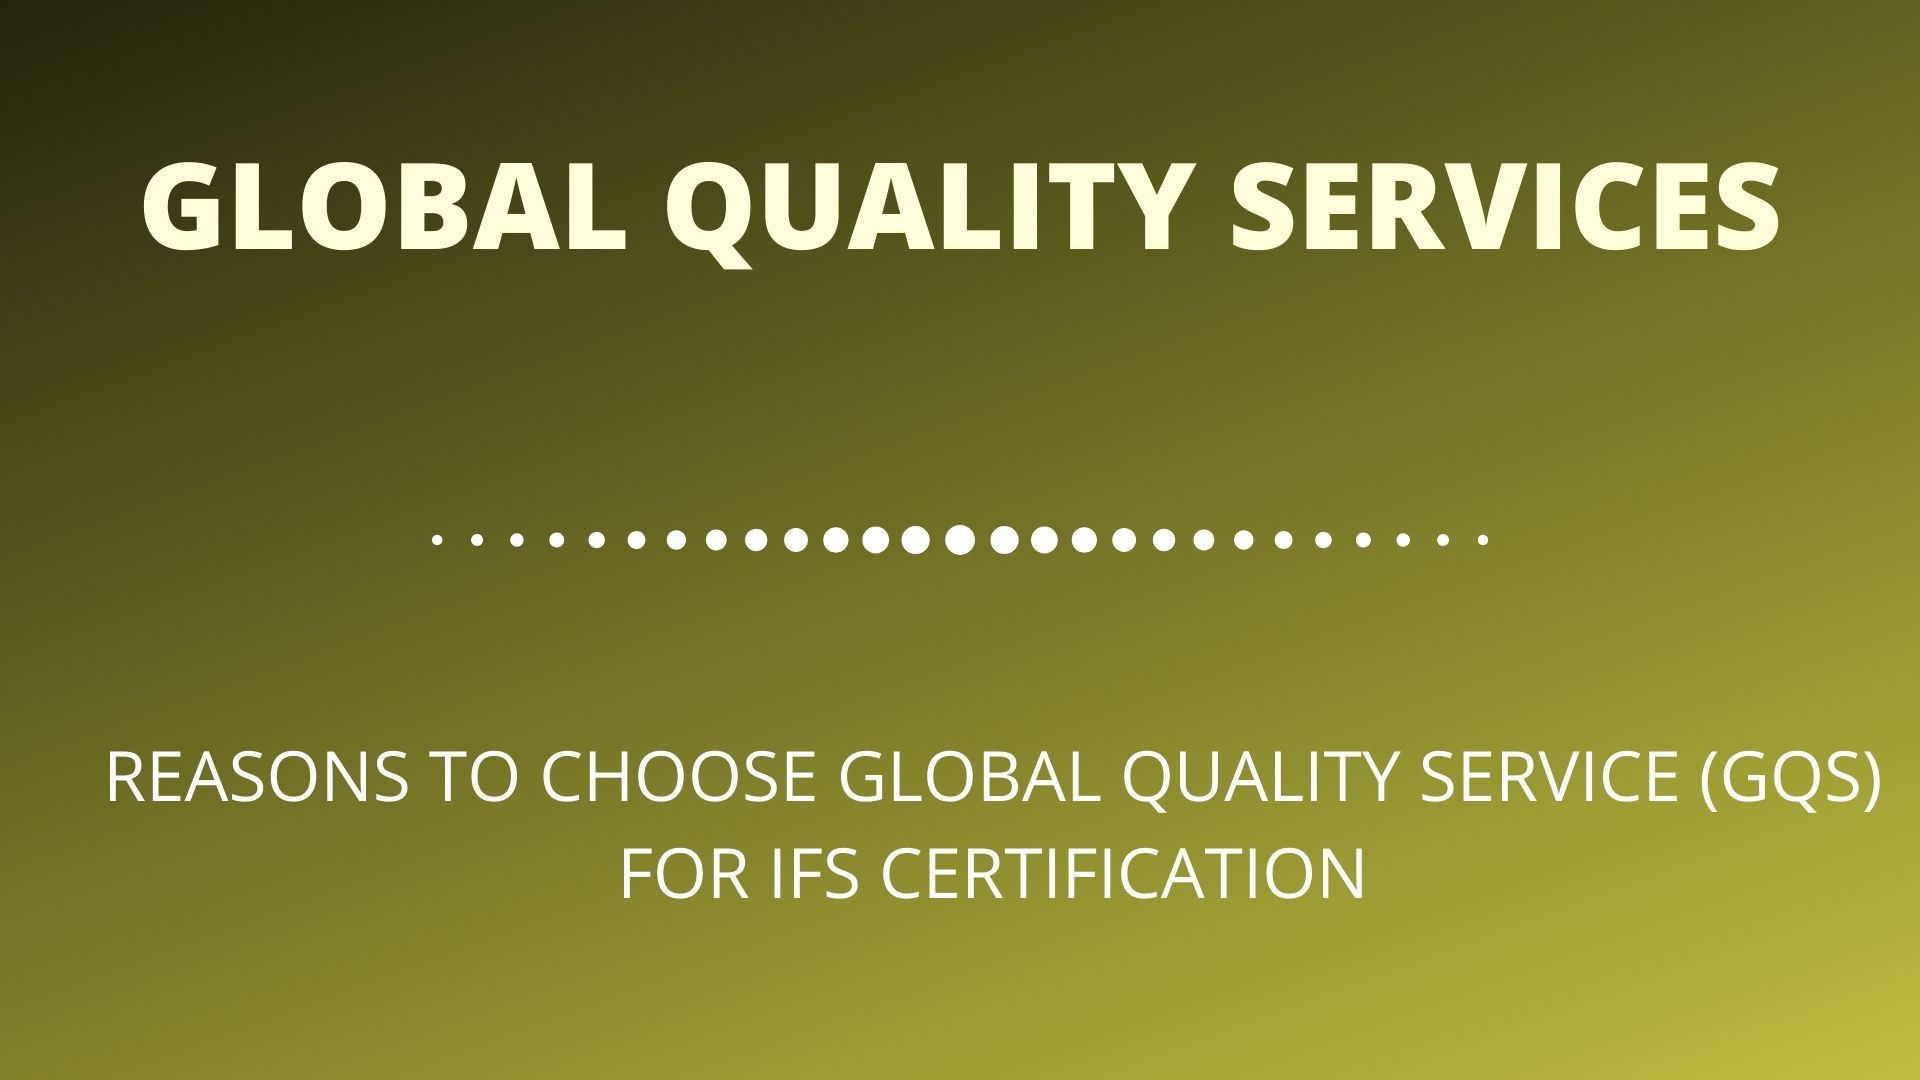 REASONS TO CHOOSE GLOBAL QUALITY SERVICE (GQS) FOR IFS CERTIFICATION_ (1)